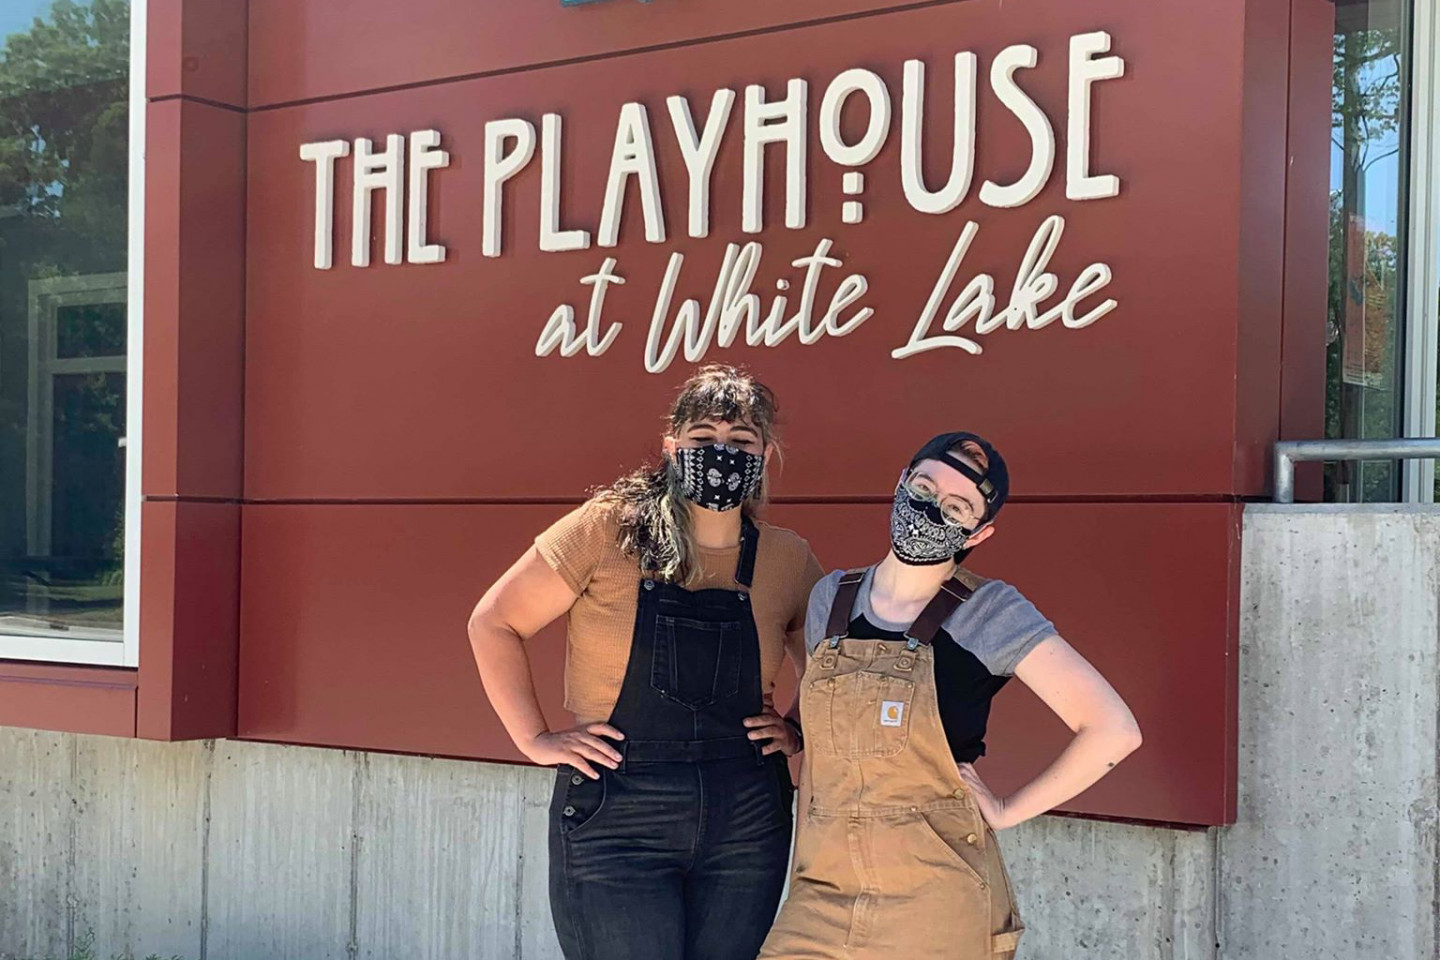 Caroline Arana and Claire Beaman stand together in front of the Playhouse at White Lake sign.